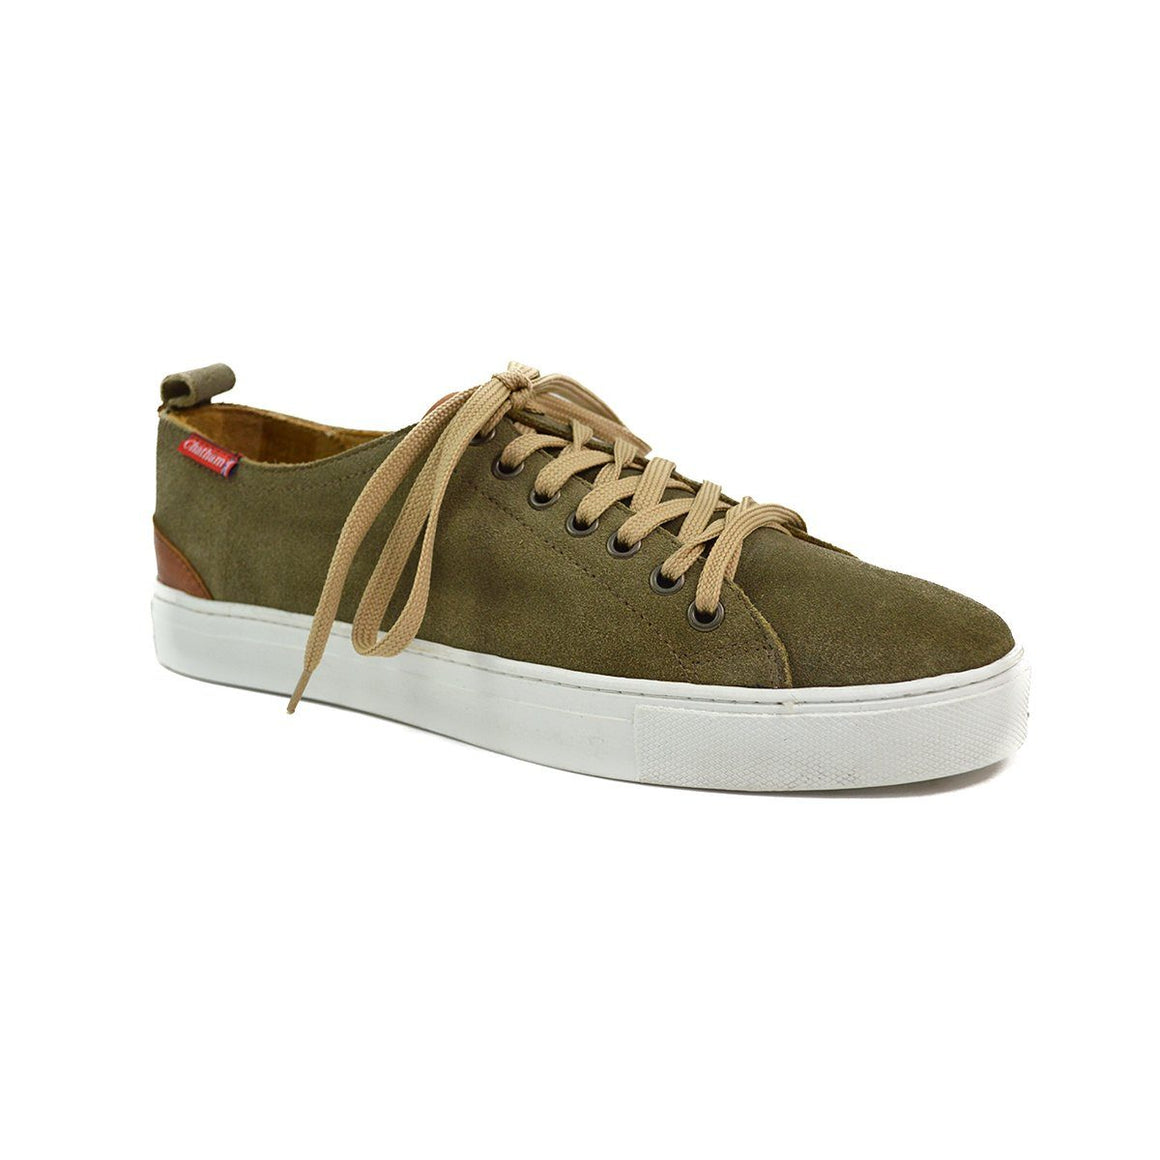 Chatham HERON Lace Up Trainers - Khaki Suede